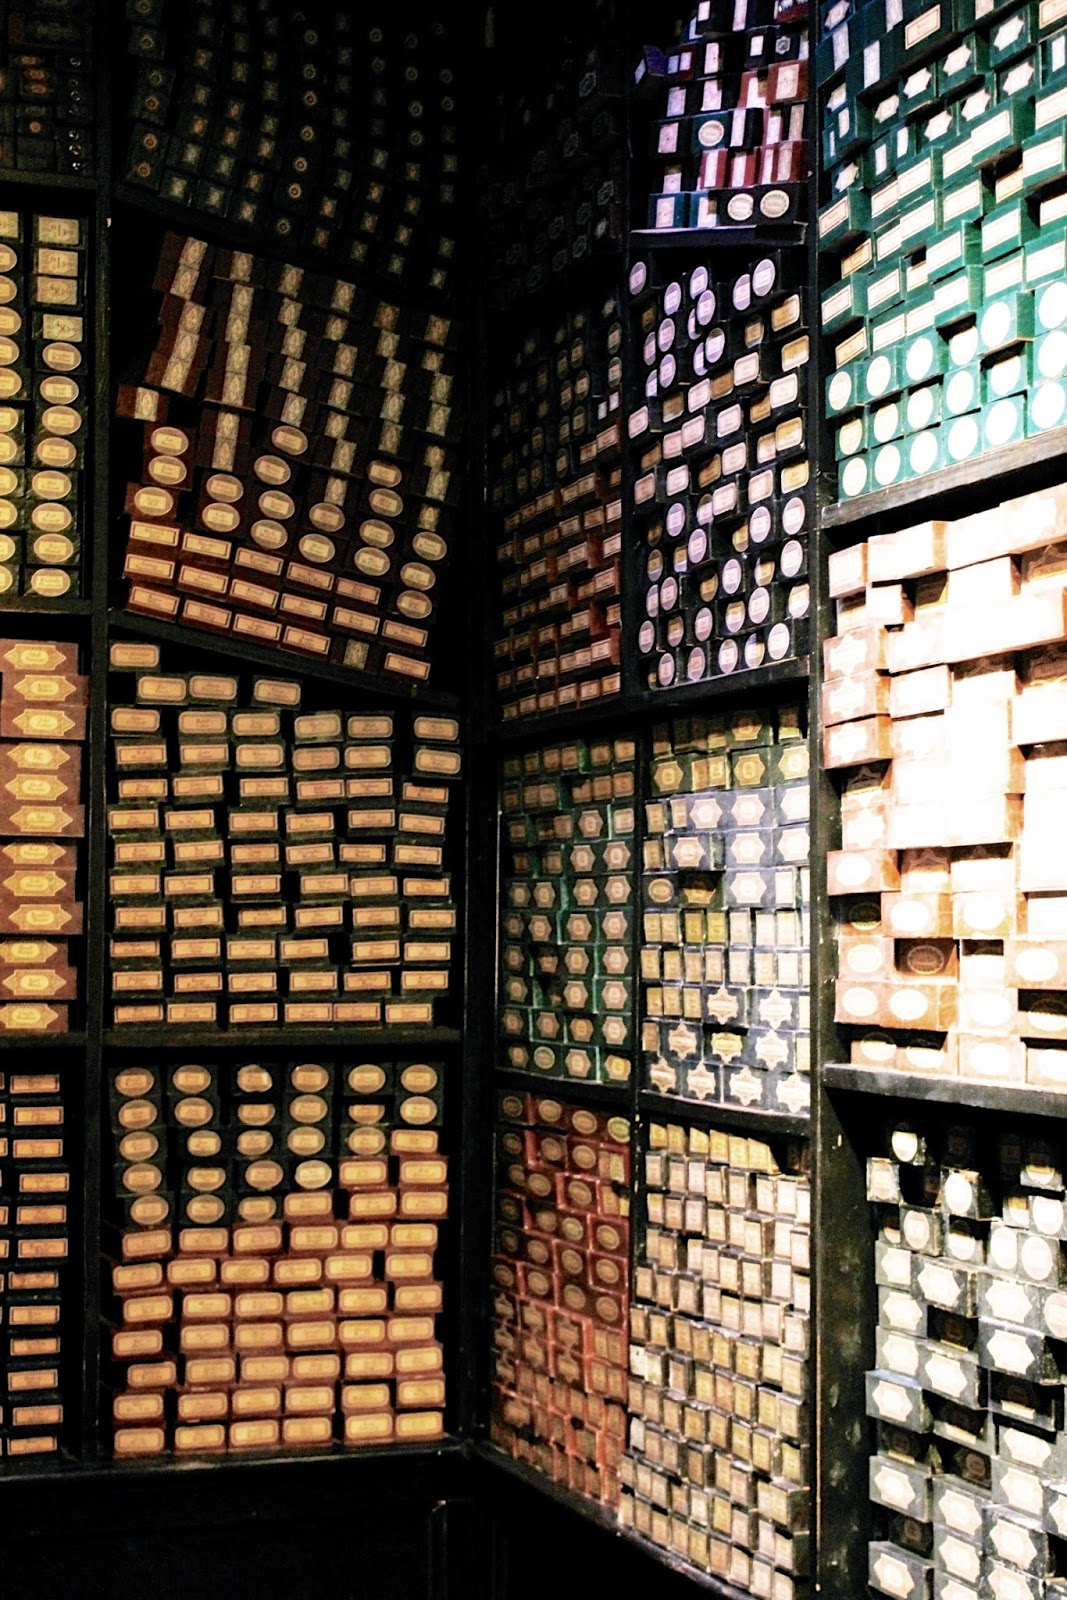 Harry Potter Studio Tour Wand Box Display